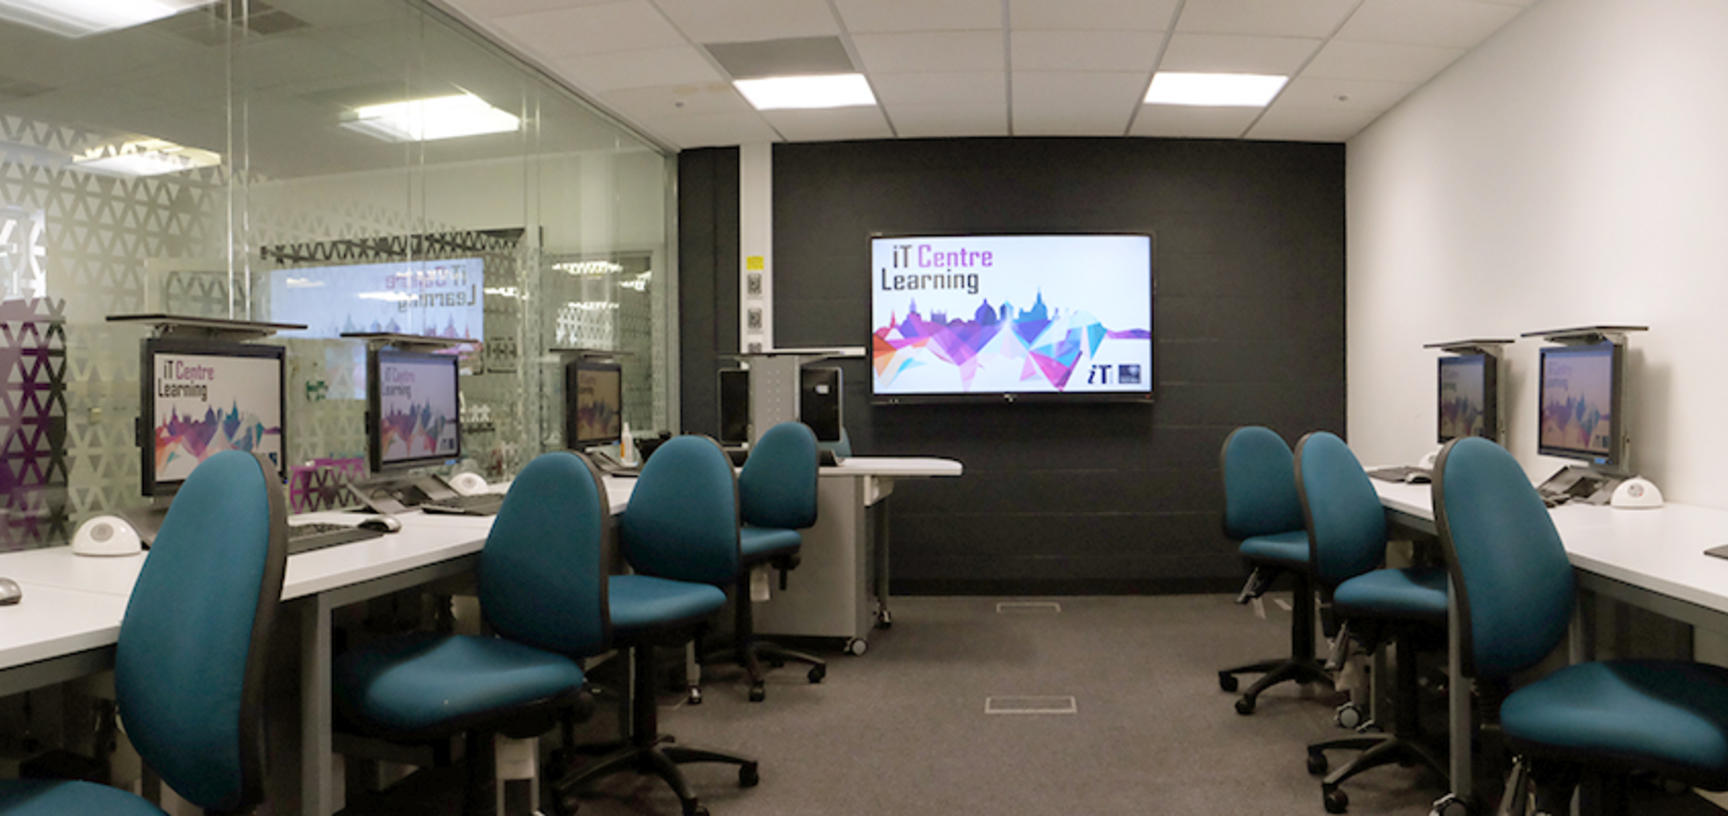 IT Learning Centre Kennet room